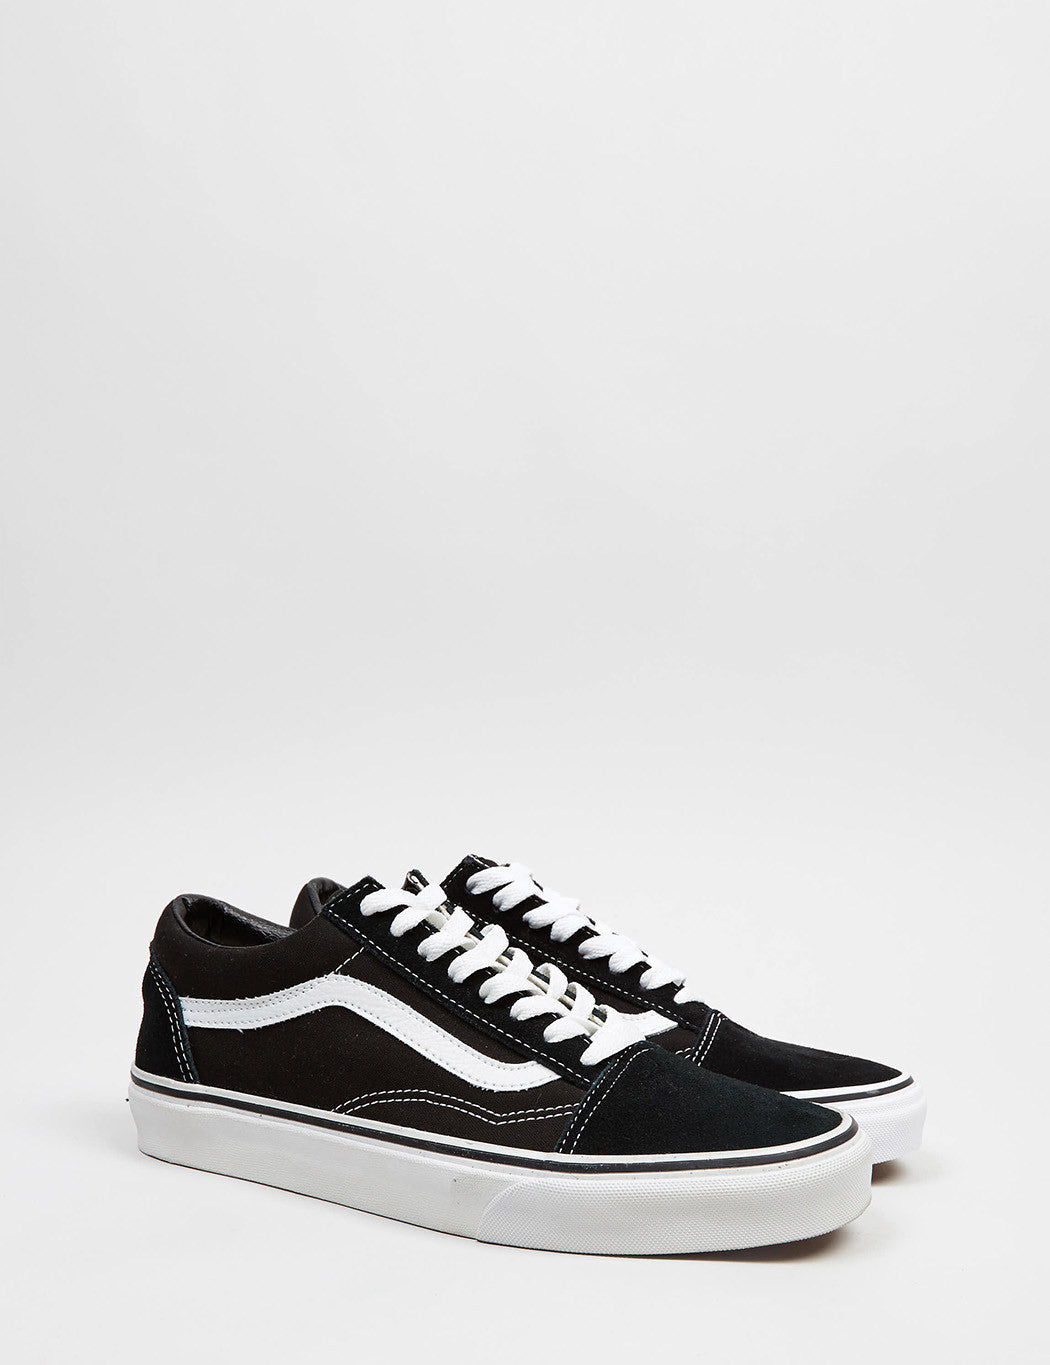 Vans Old Skool Trainers - Black